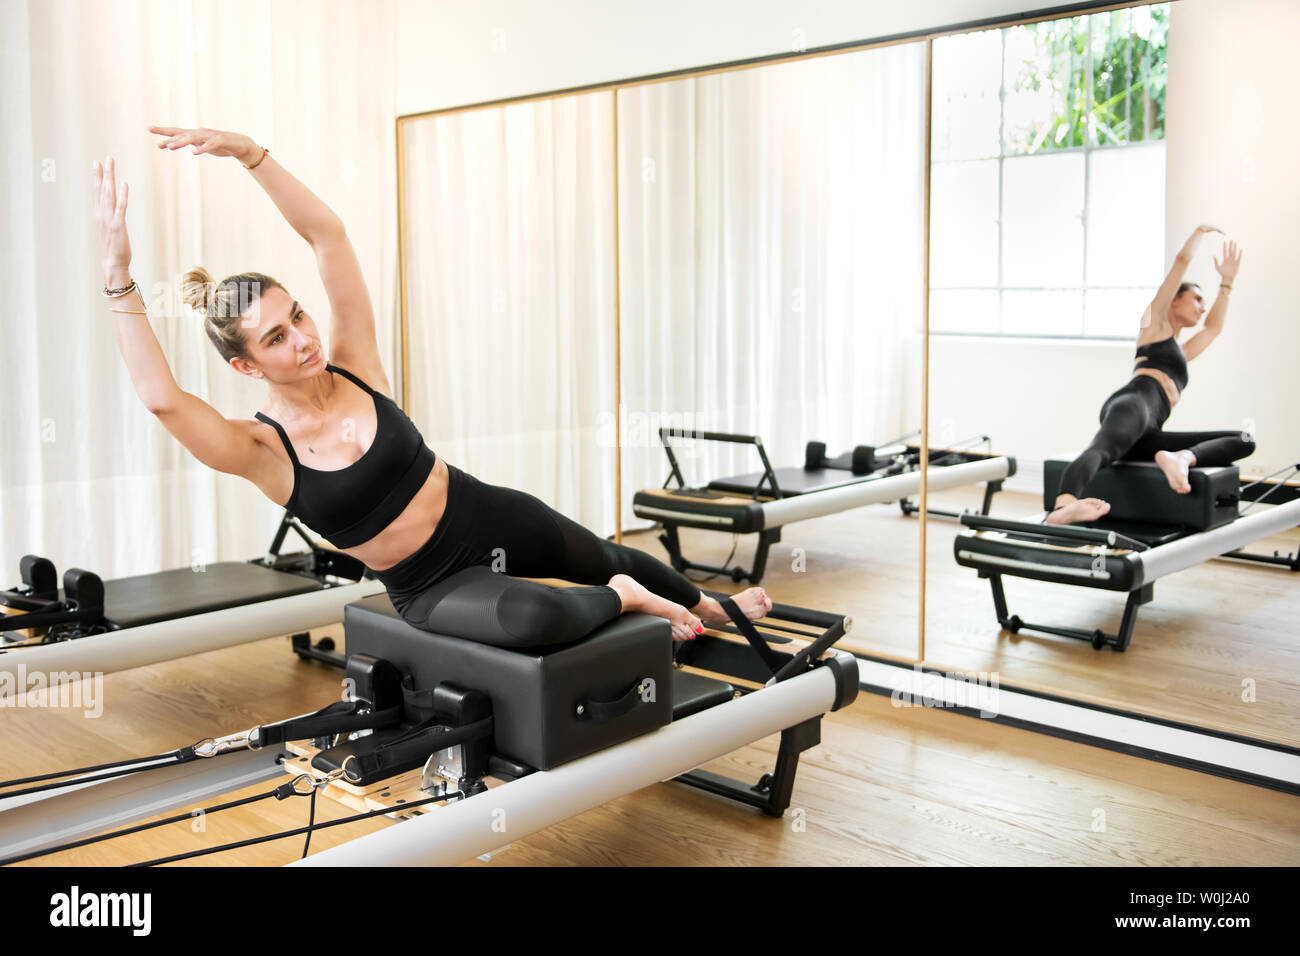 Woman making mermaid yoga exercise on reformer pilates bed reflecting in the mirror - Stock Image